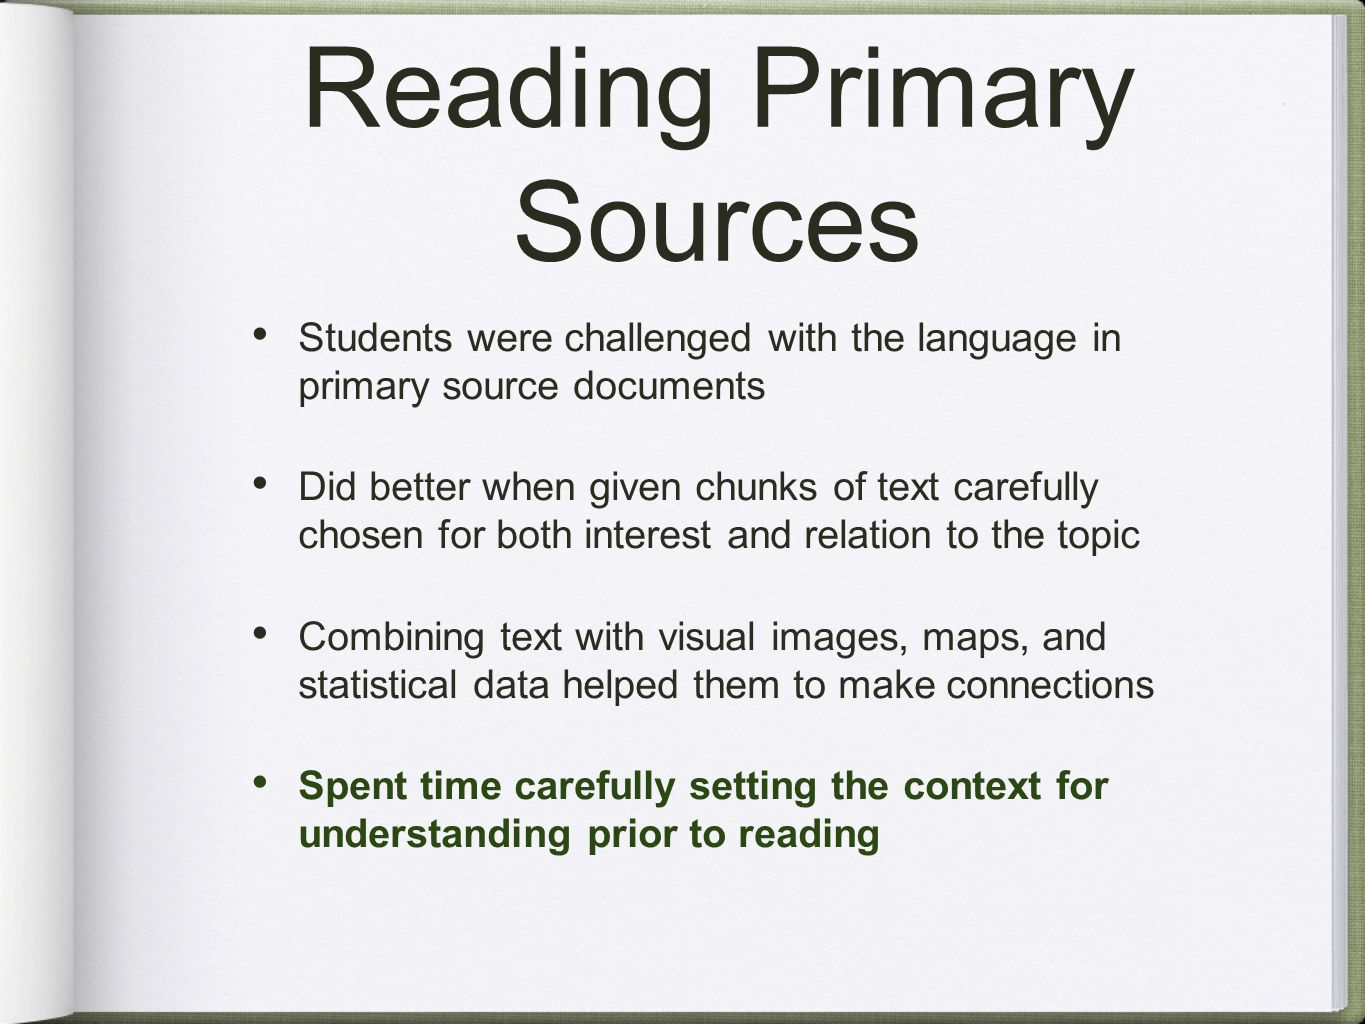 Reading Primary Sources Students were challenged with the language in primary source documents Did better when given chunks of text carefully chosen for both interest and relation to the topic Combining text with visual images, maps, and statistical data helped them to make connections Spent time carefully setting the context for understanding prior to reading